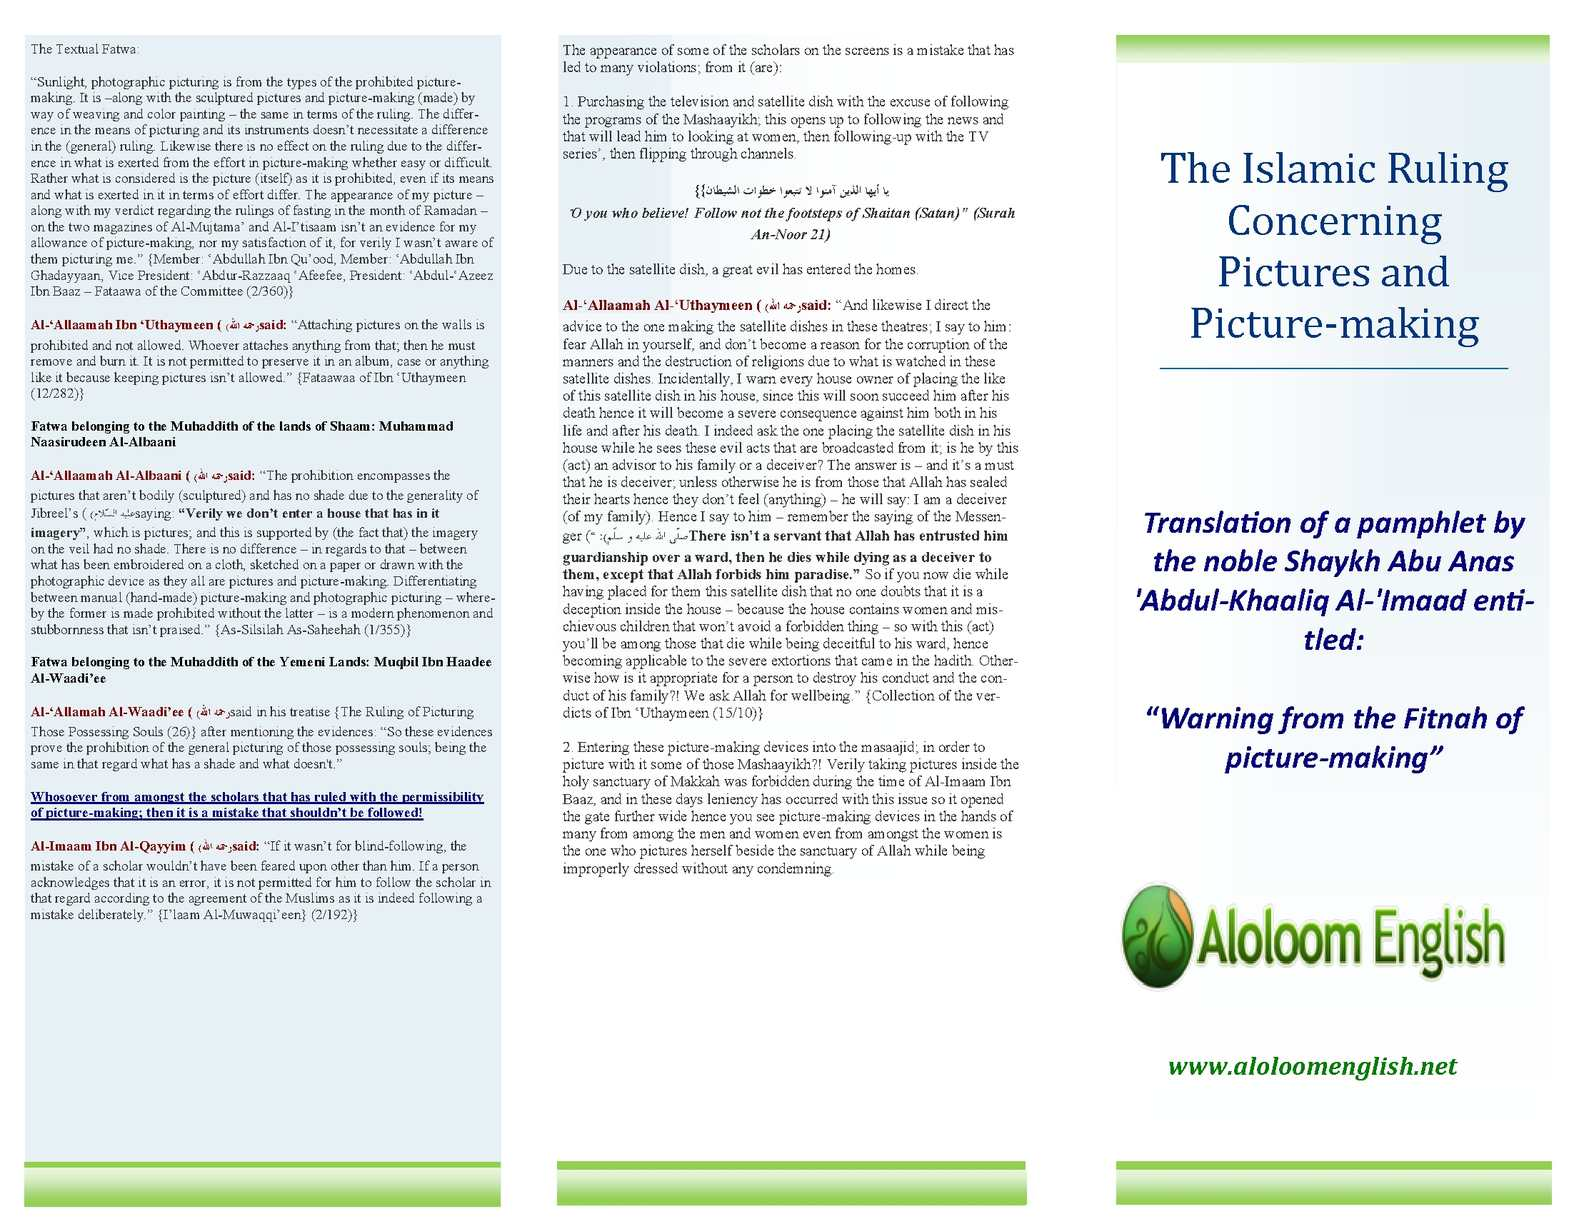 Calaméo - The Islamic Ruling Concerning Pictures and Picture